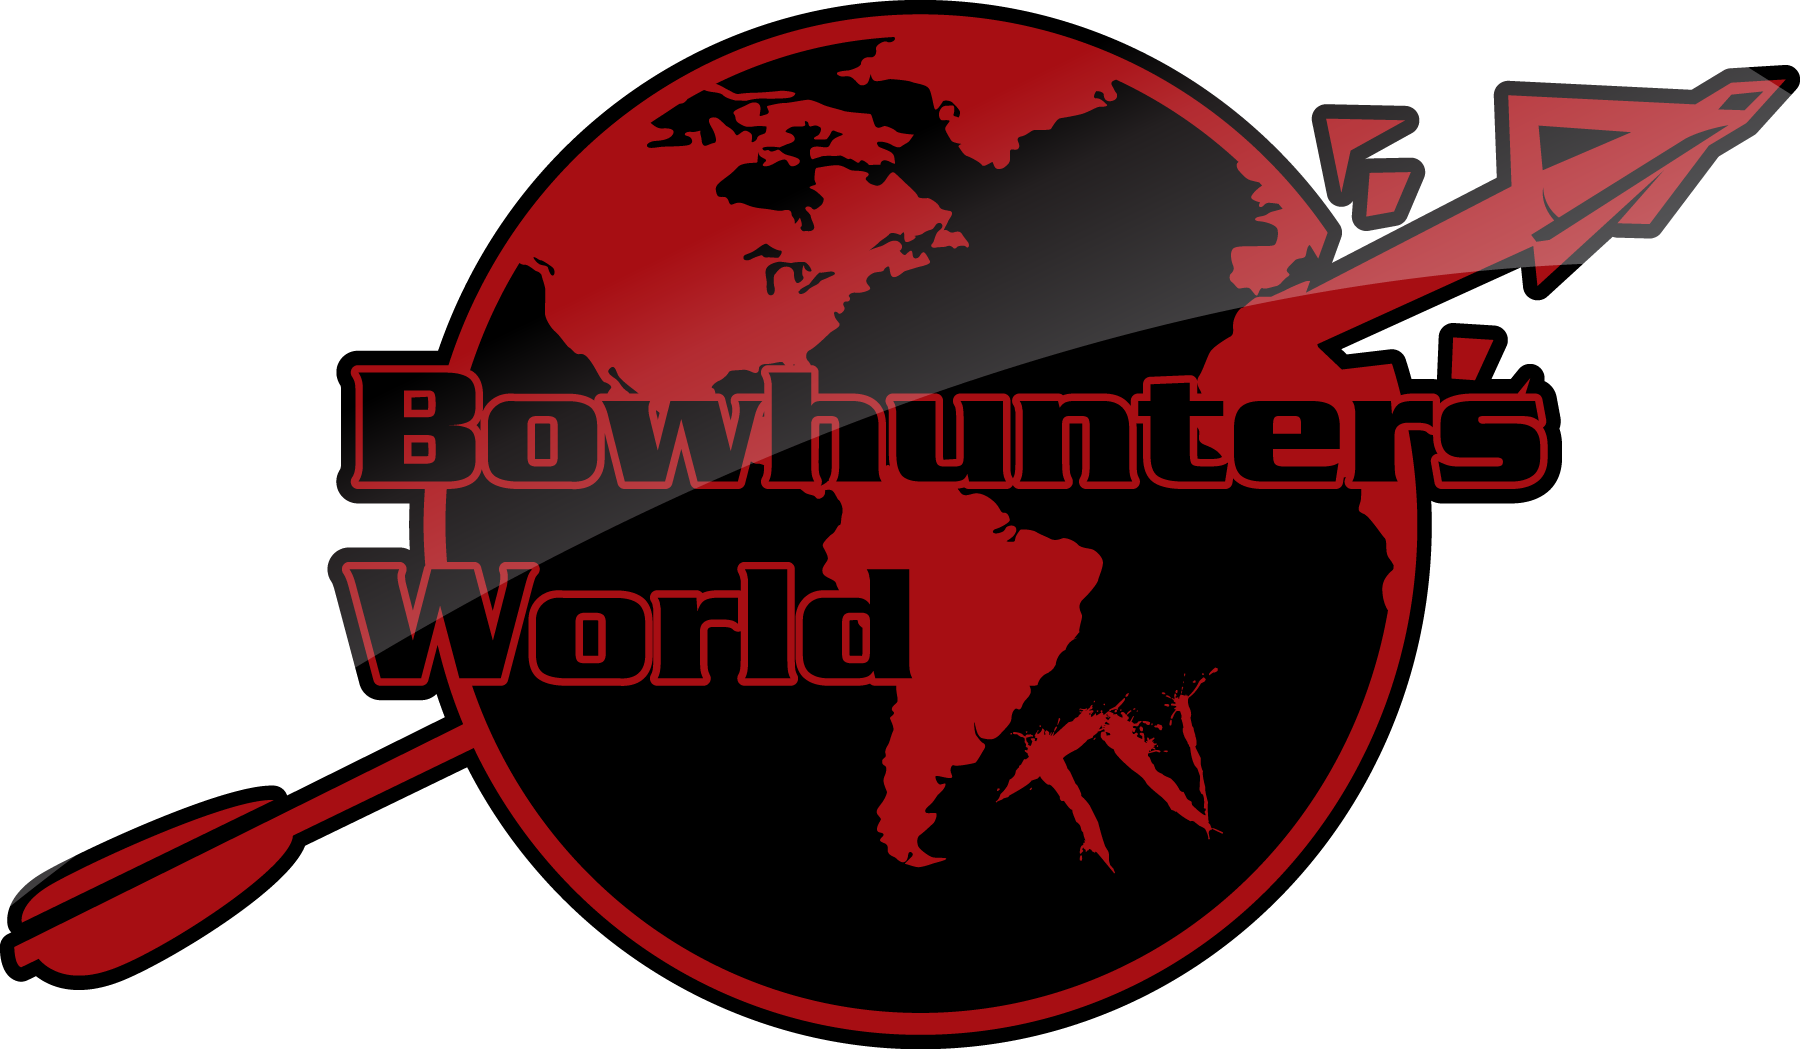 Bowhunters World